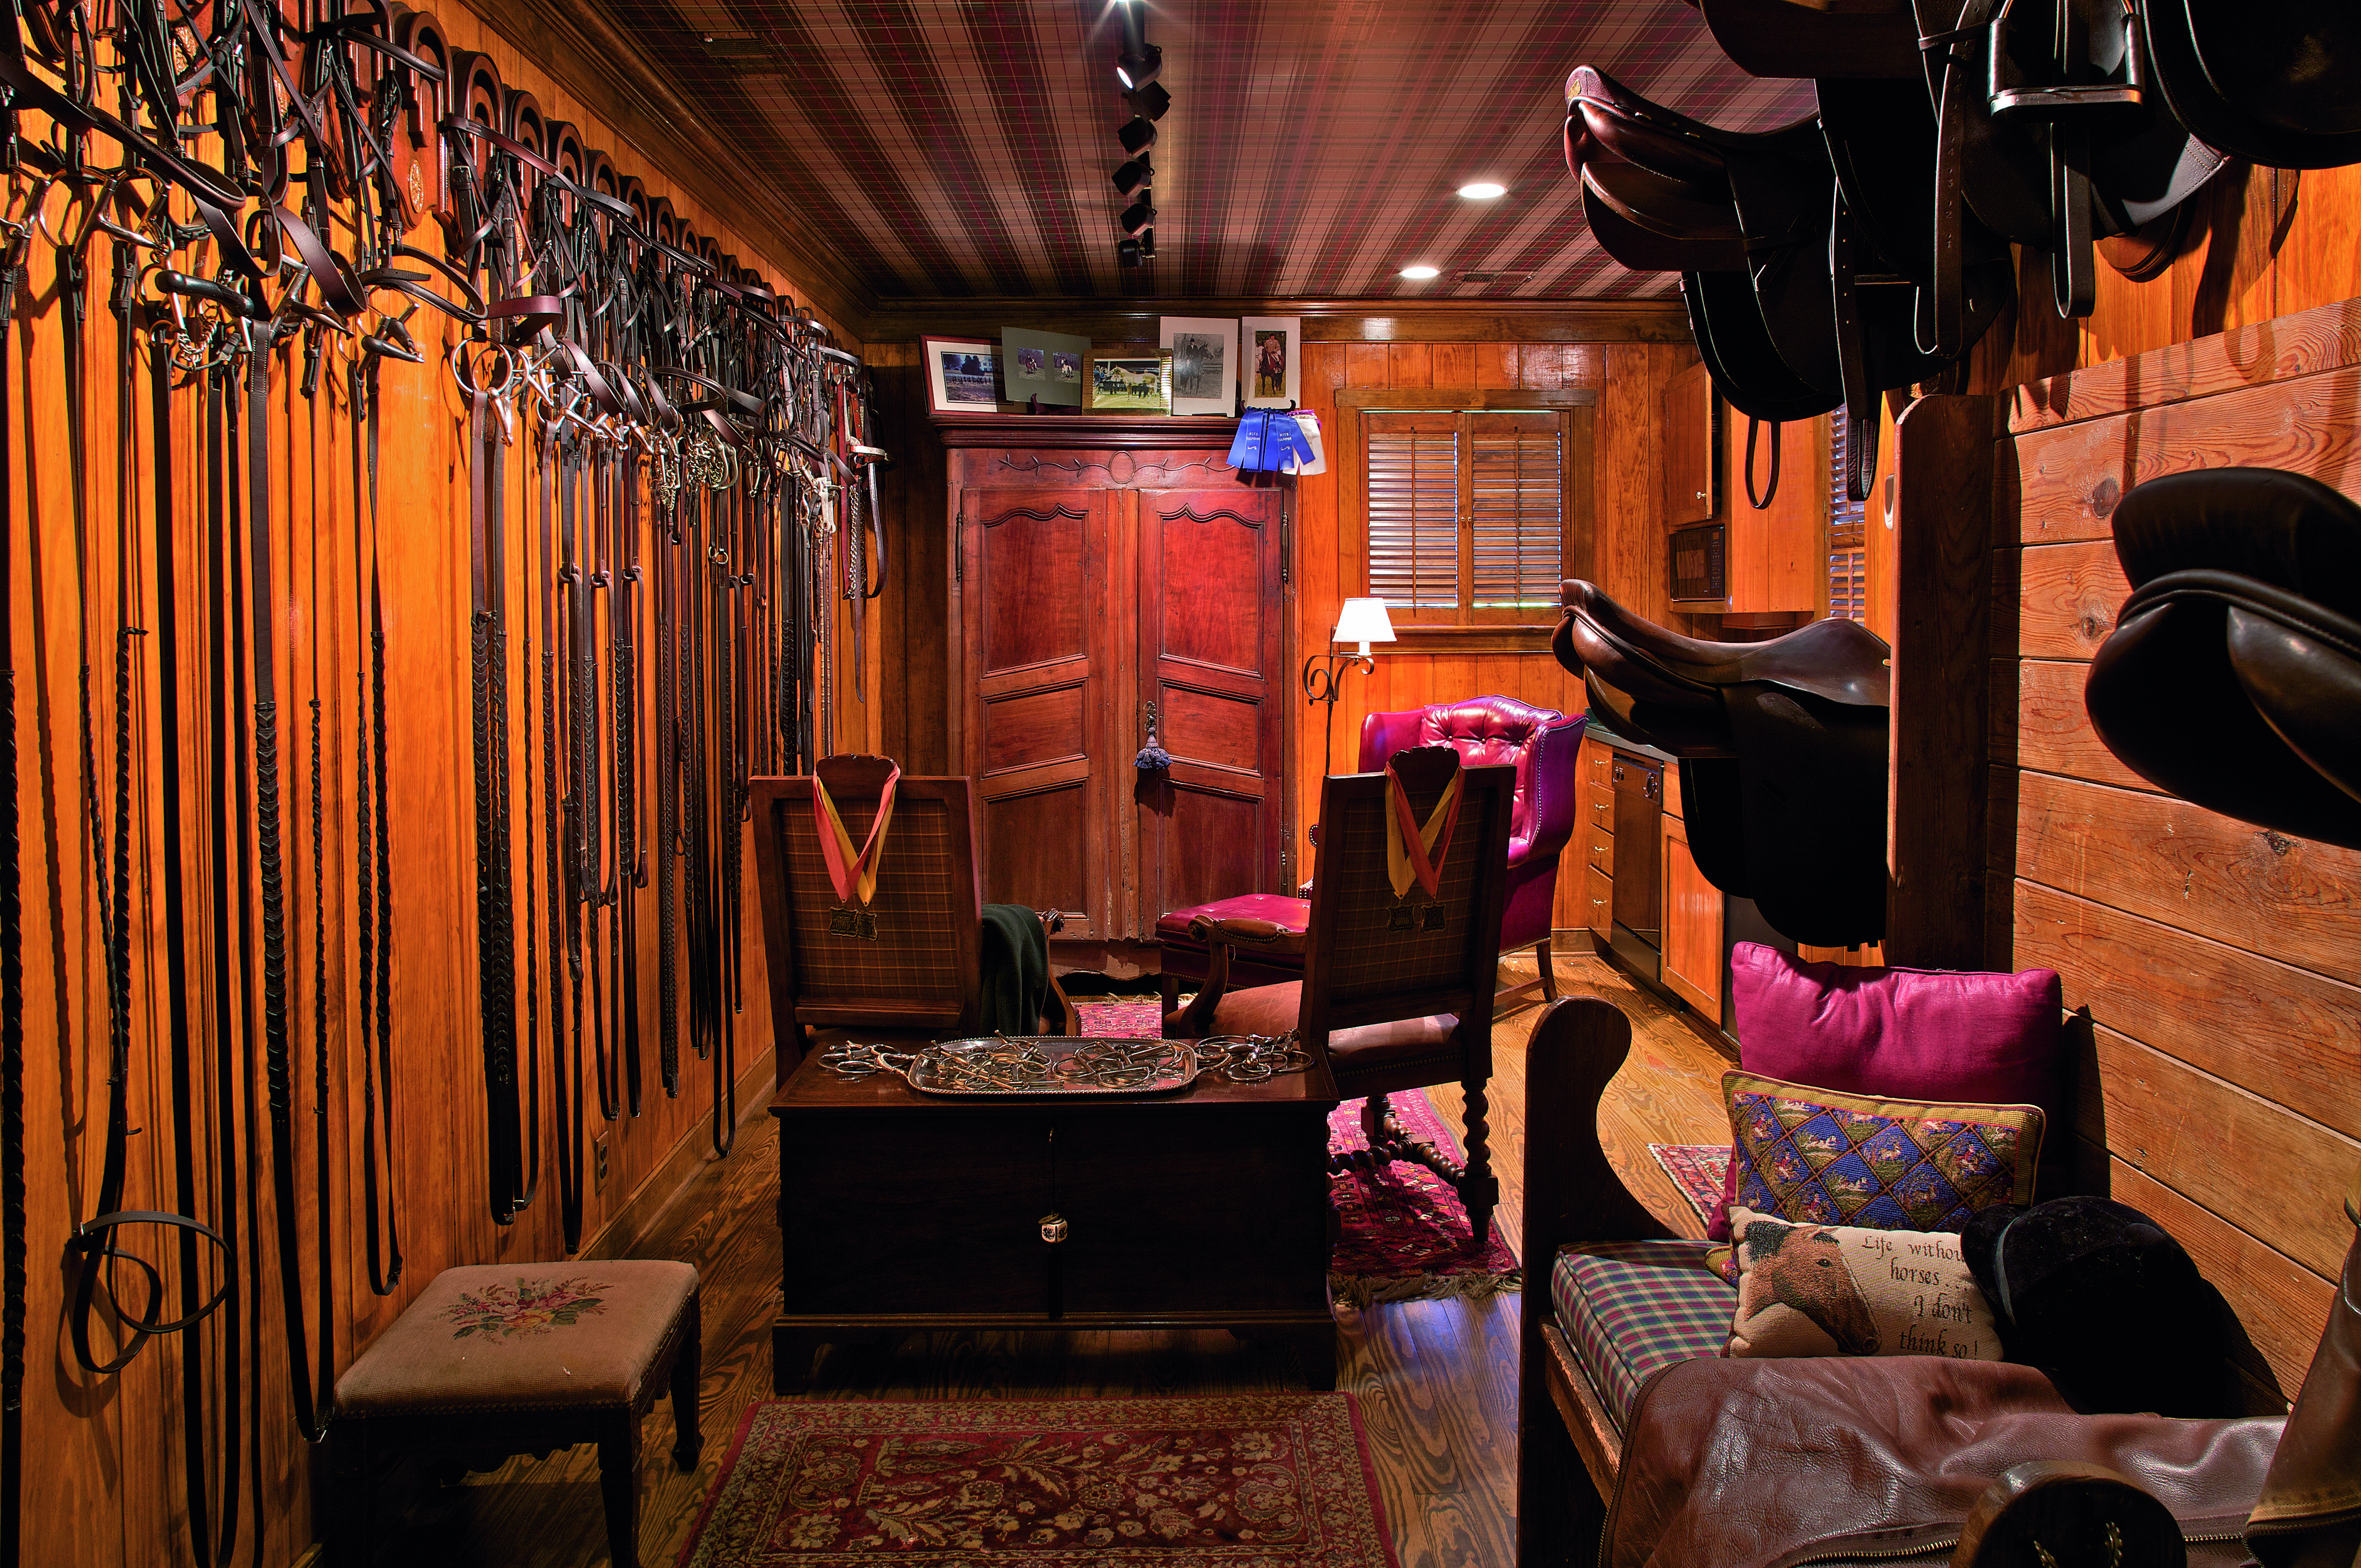 1000 images about Tack Rooms on Pinterest  Tack Rooms